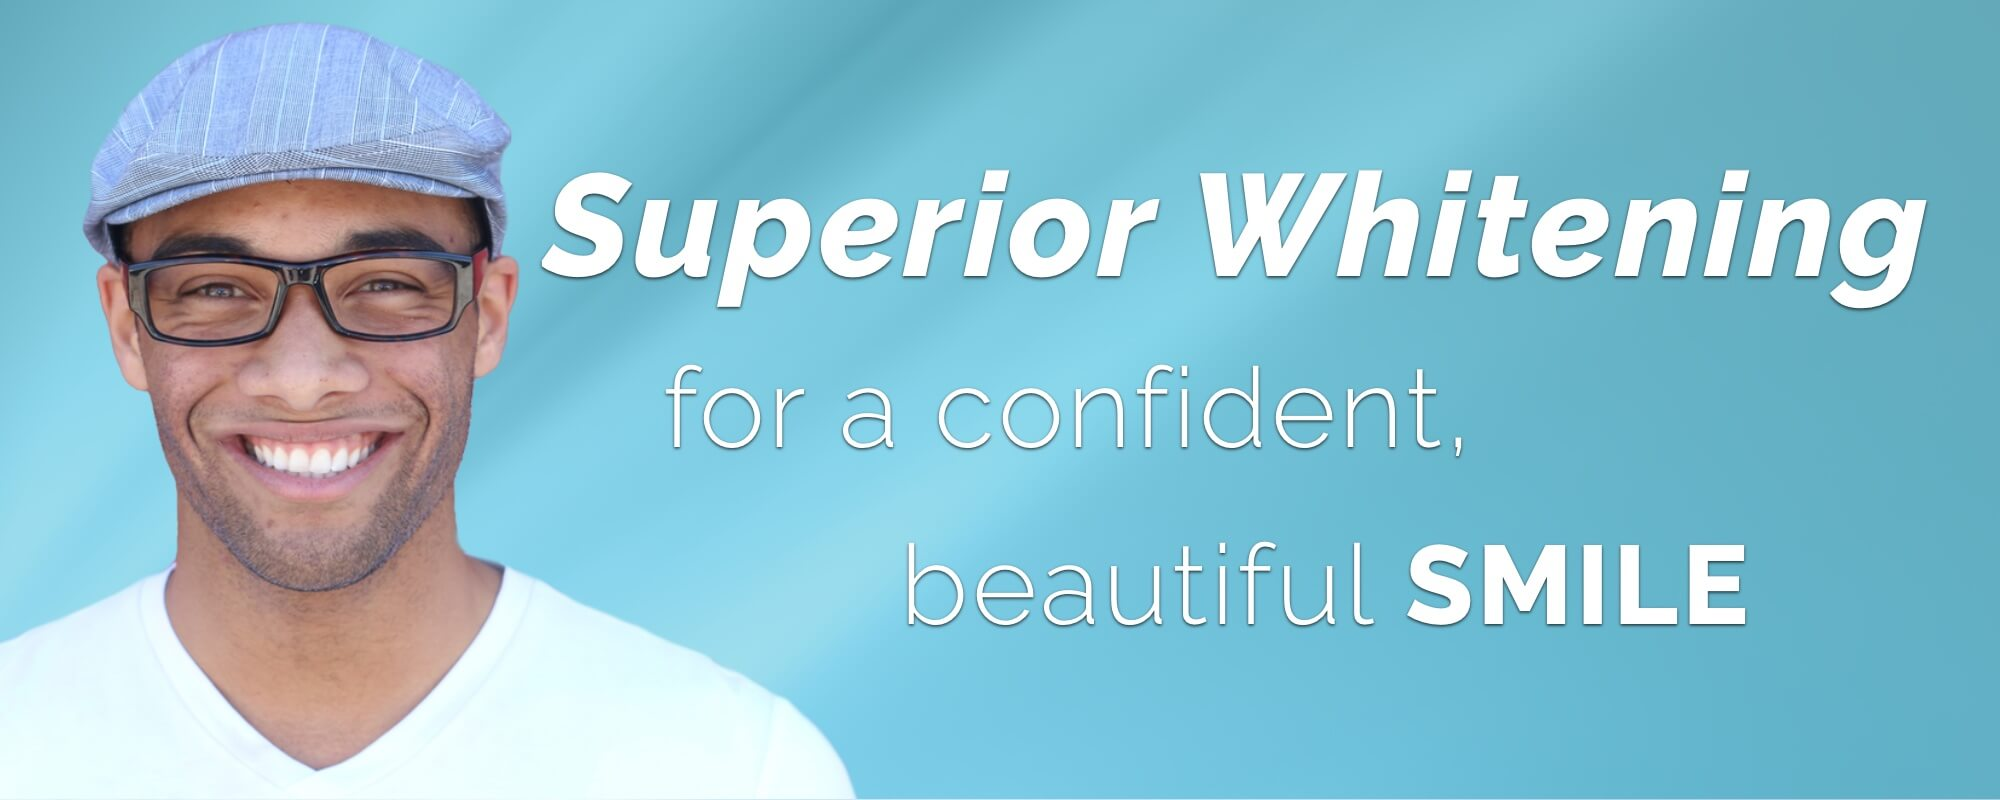 superior teeth whitening